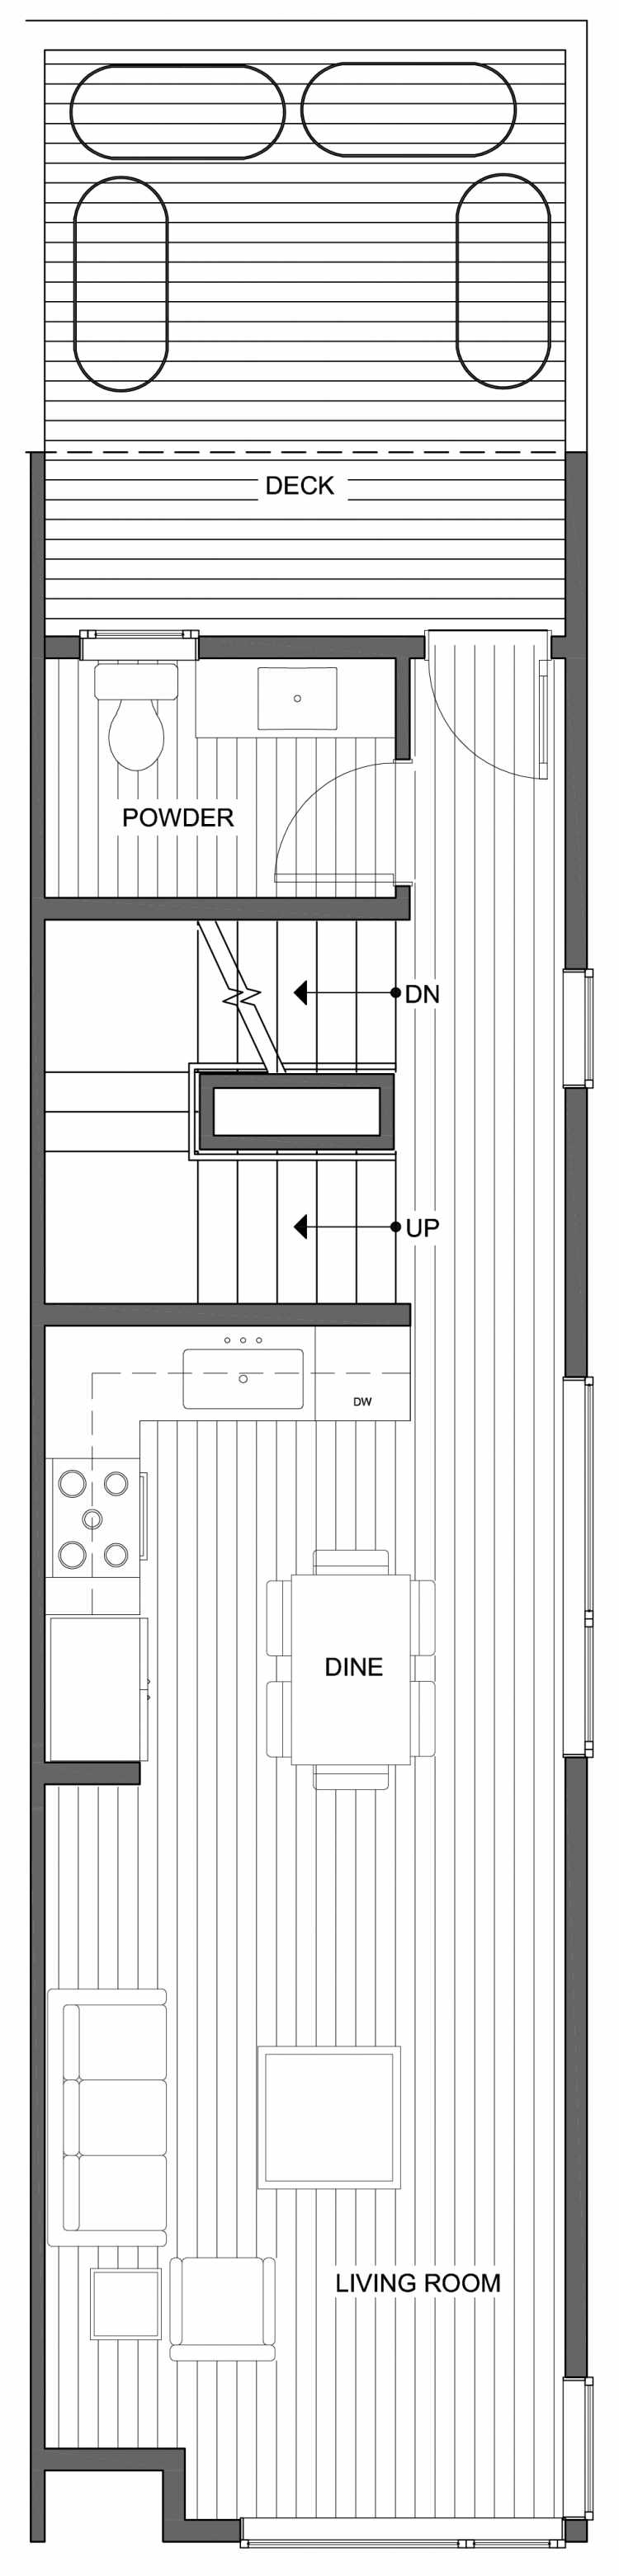 Third Floor Plan of 806G N 46th St, One of the Nino 15 East Townhomes by Isola Homes